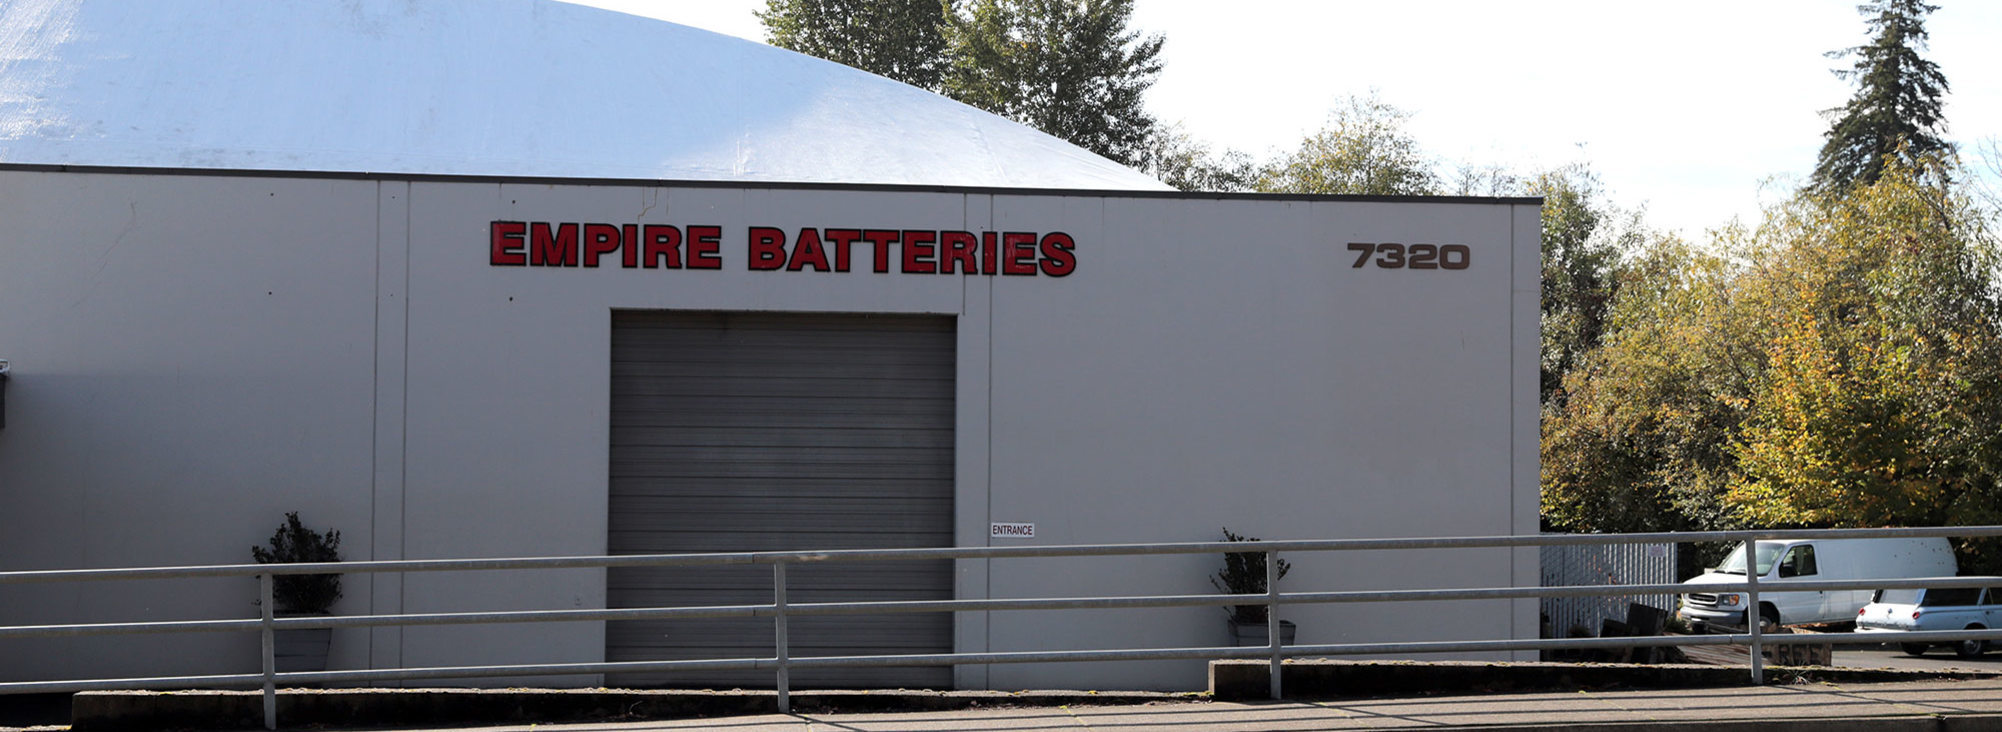 el exterior del negocio Empire Batteries en Tigard